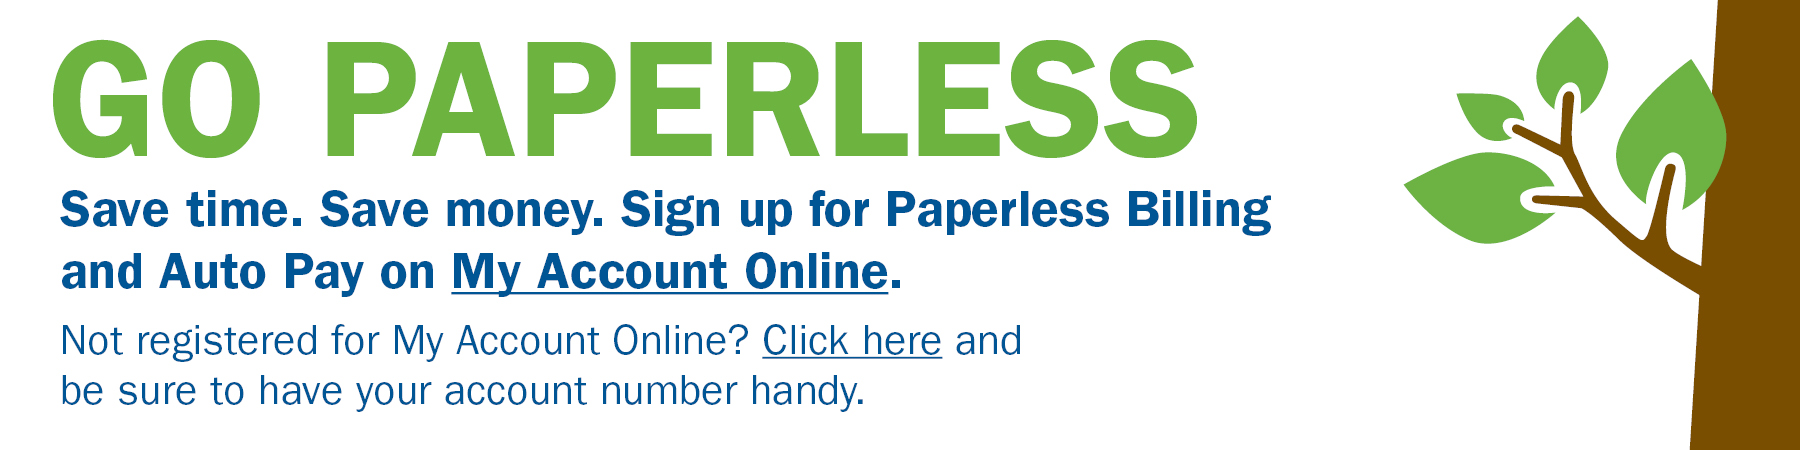 Paperless Billing 11-20162